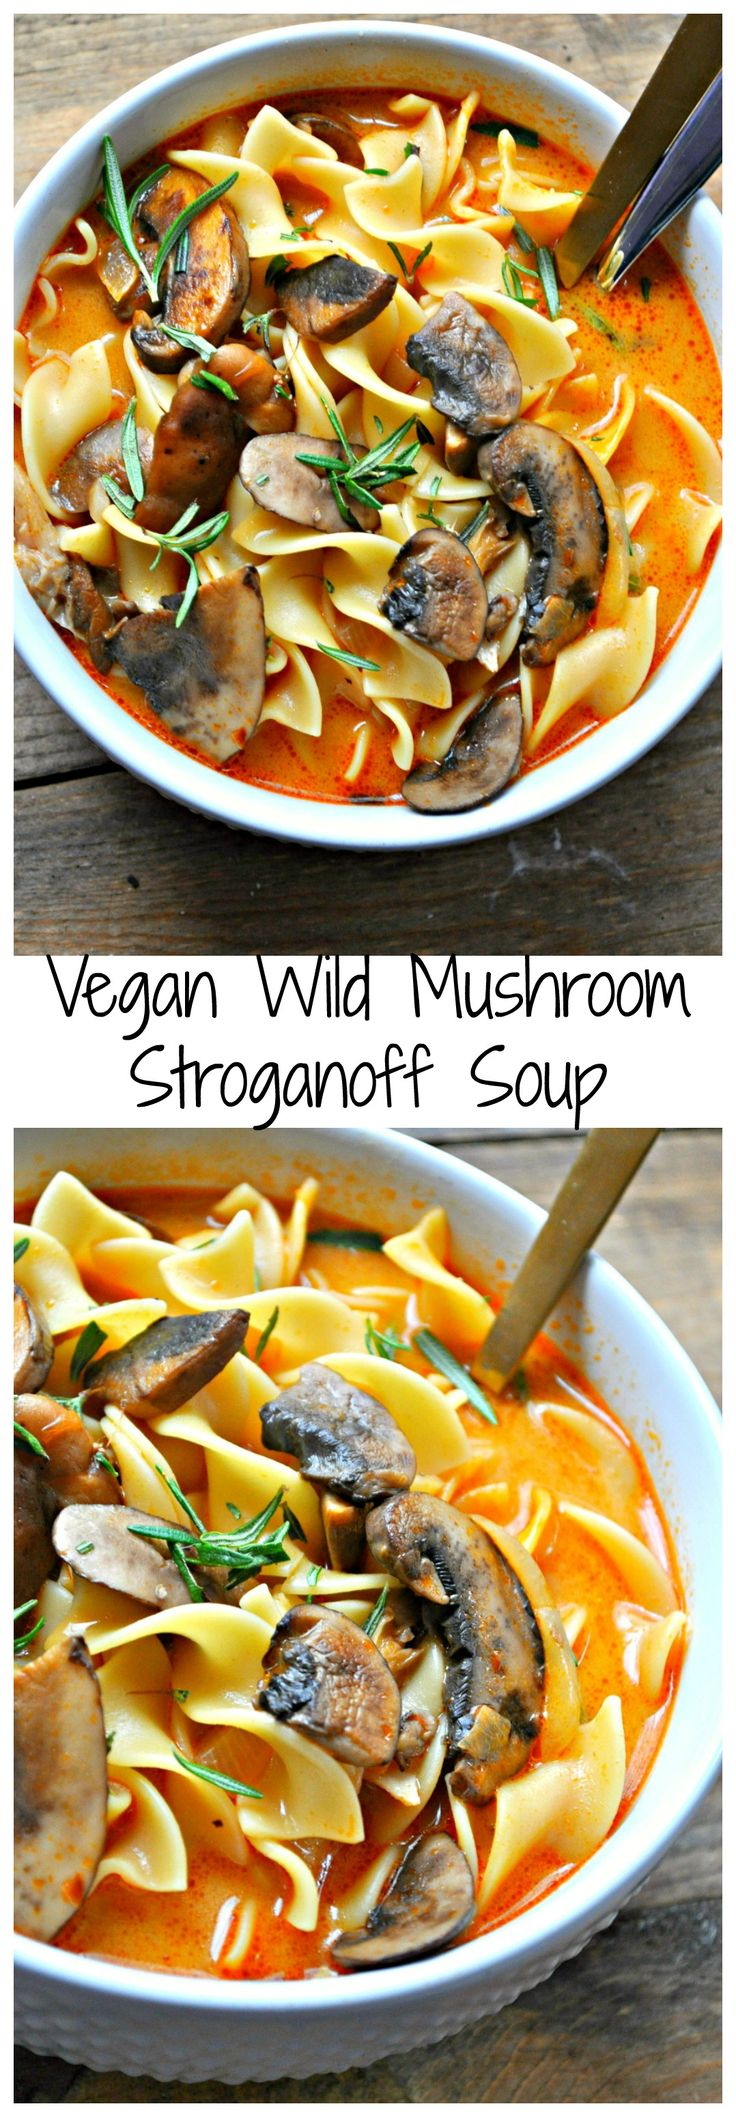 Stroganoff is transformed into an incredible plant based soup with delicious rich wild mushrooms and coconut cream takes the place of sour cream! #vegan #vegetarian #vegetarianrecipes